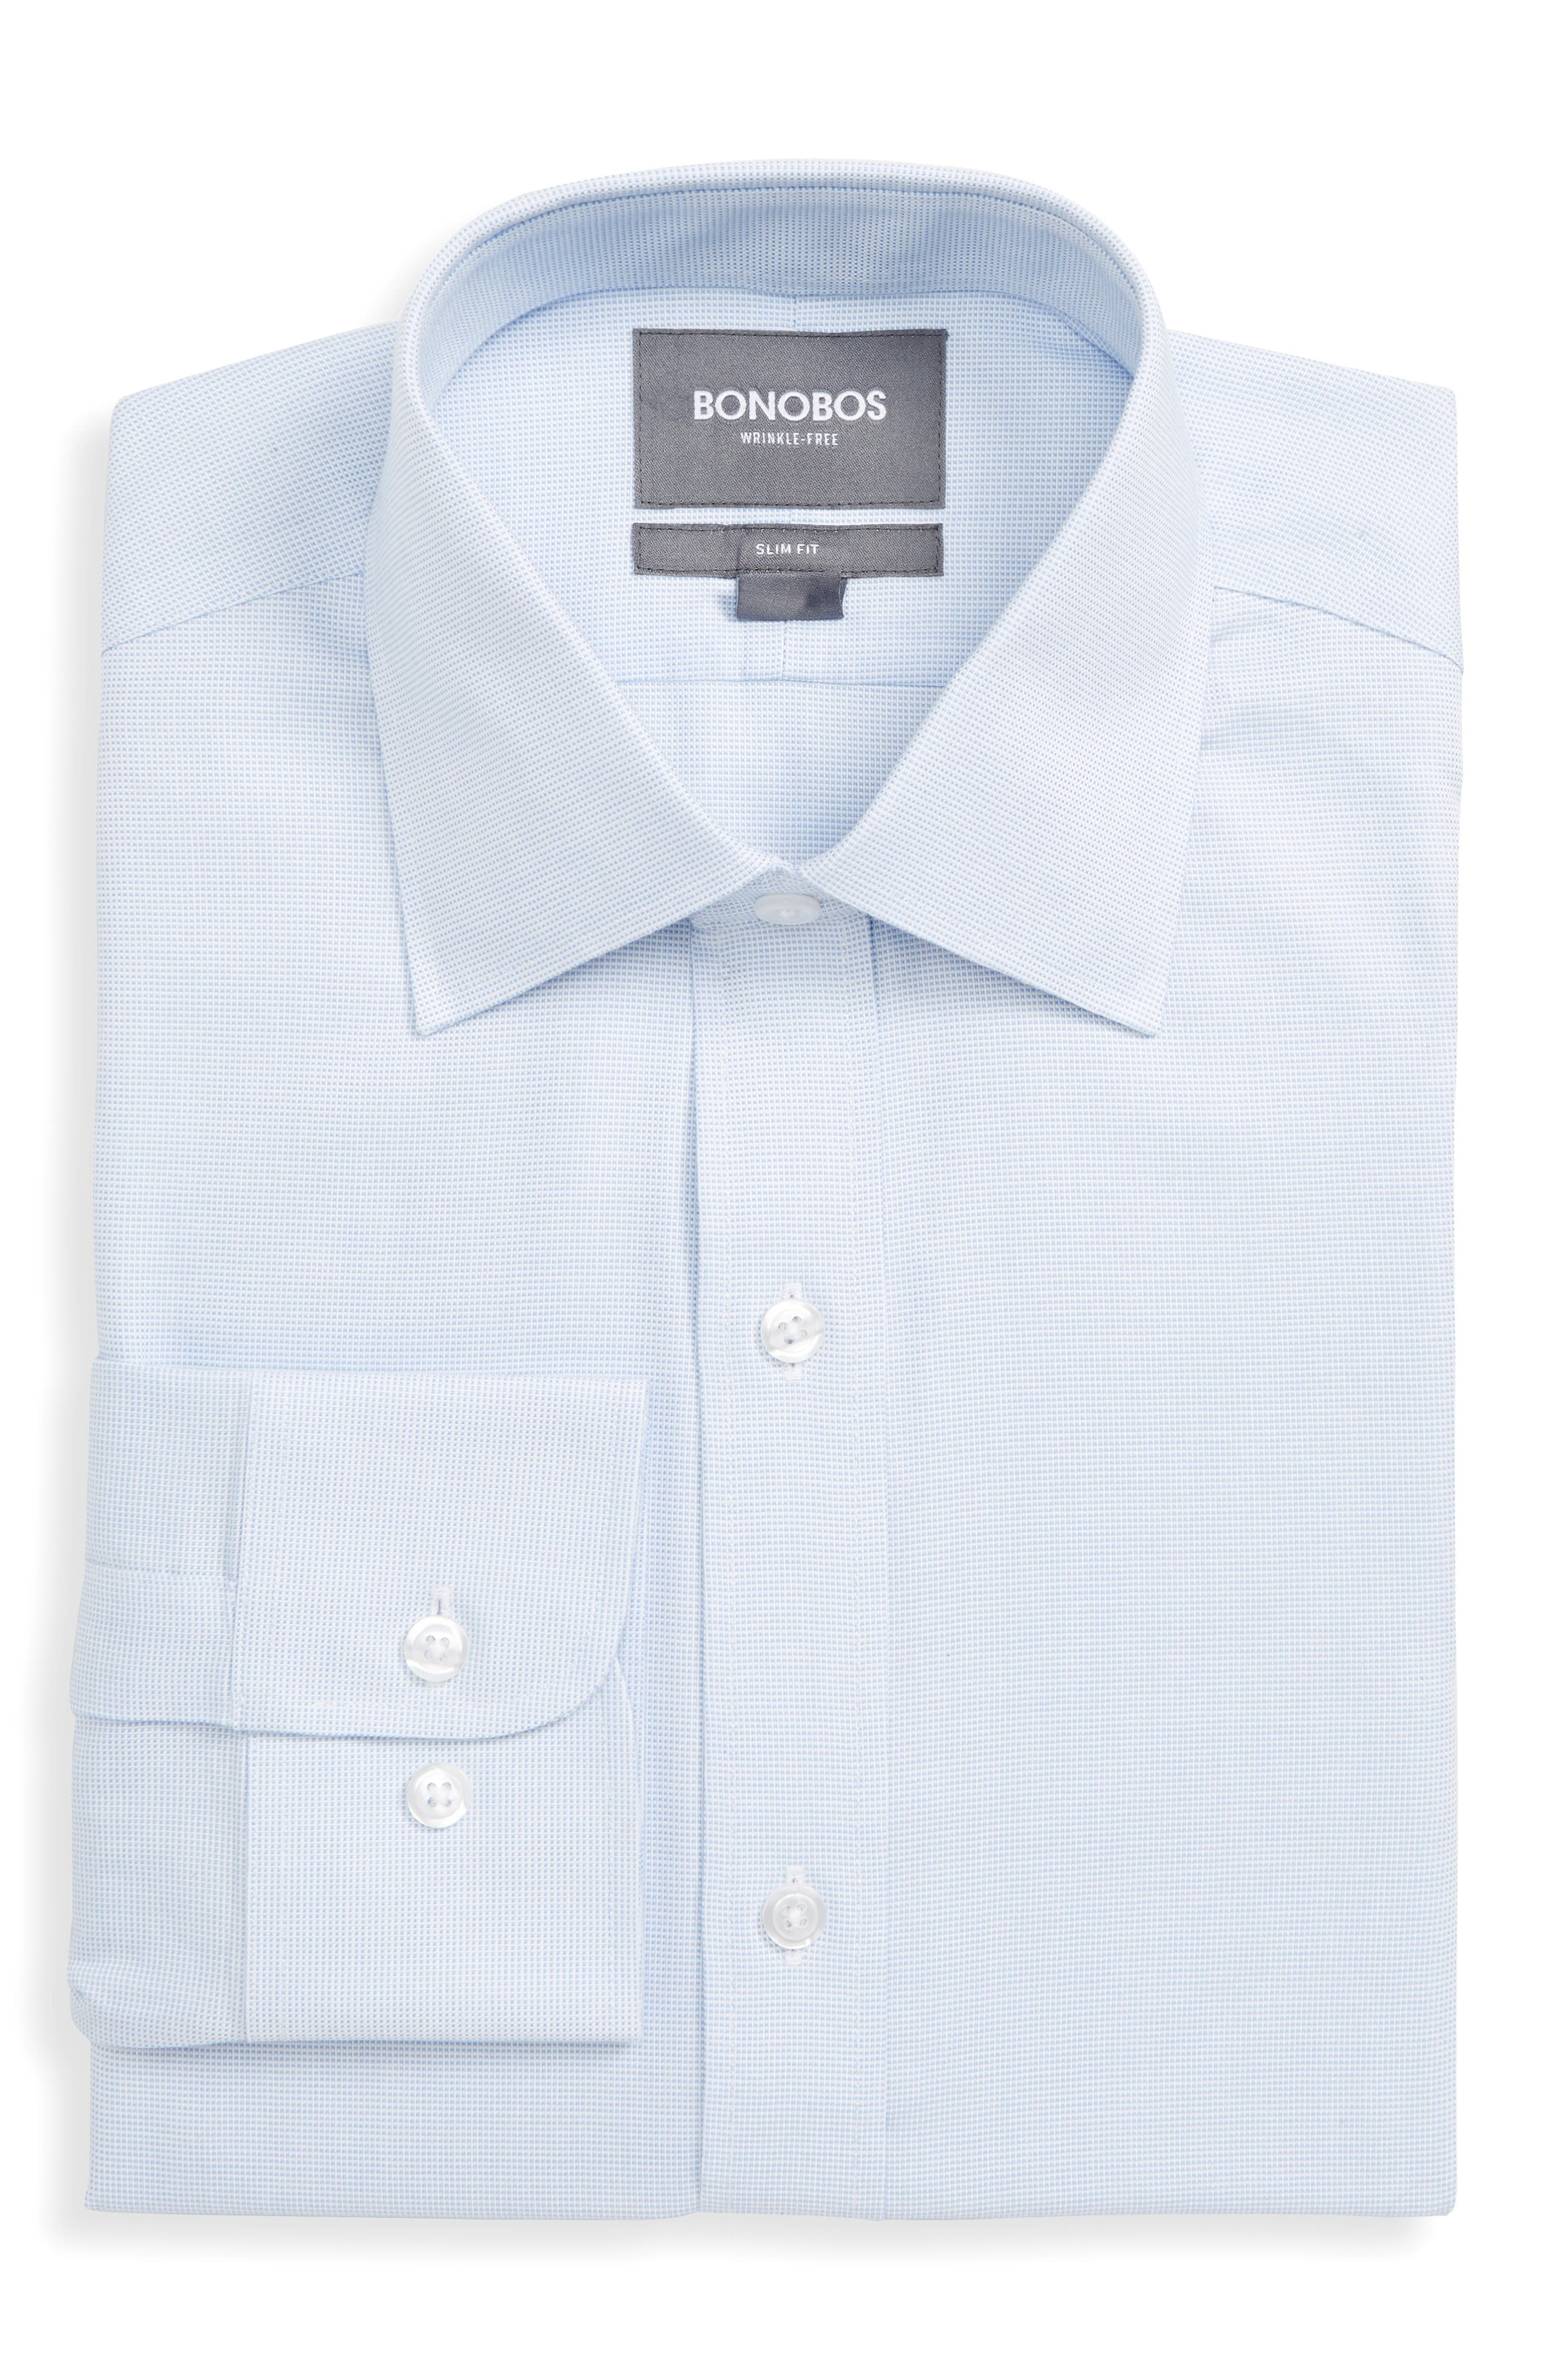 Bonobos Daily Grind Slim Fit Solid Dress Shirt, Blue